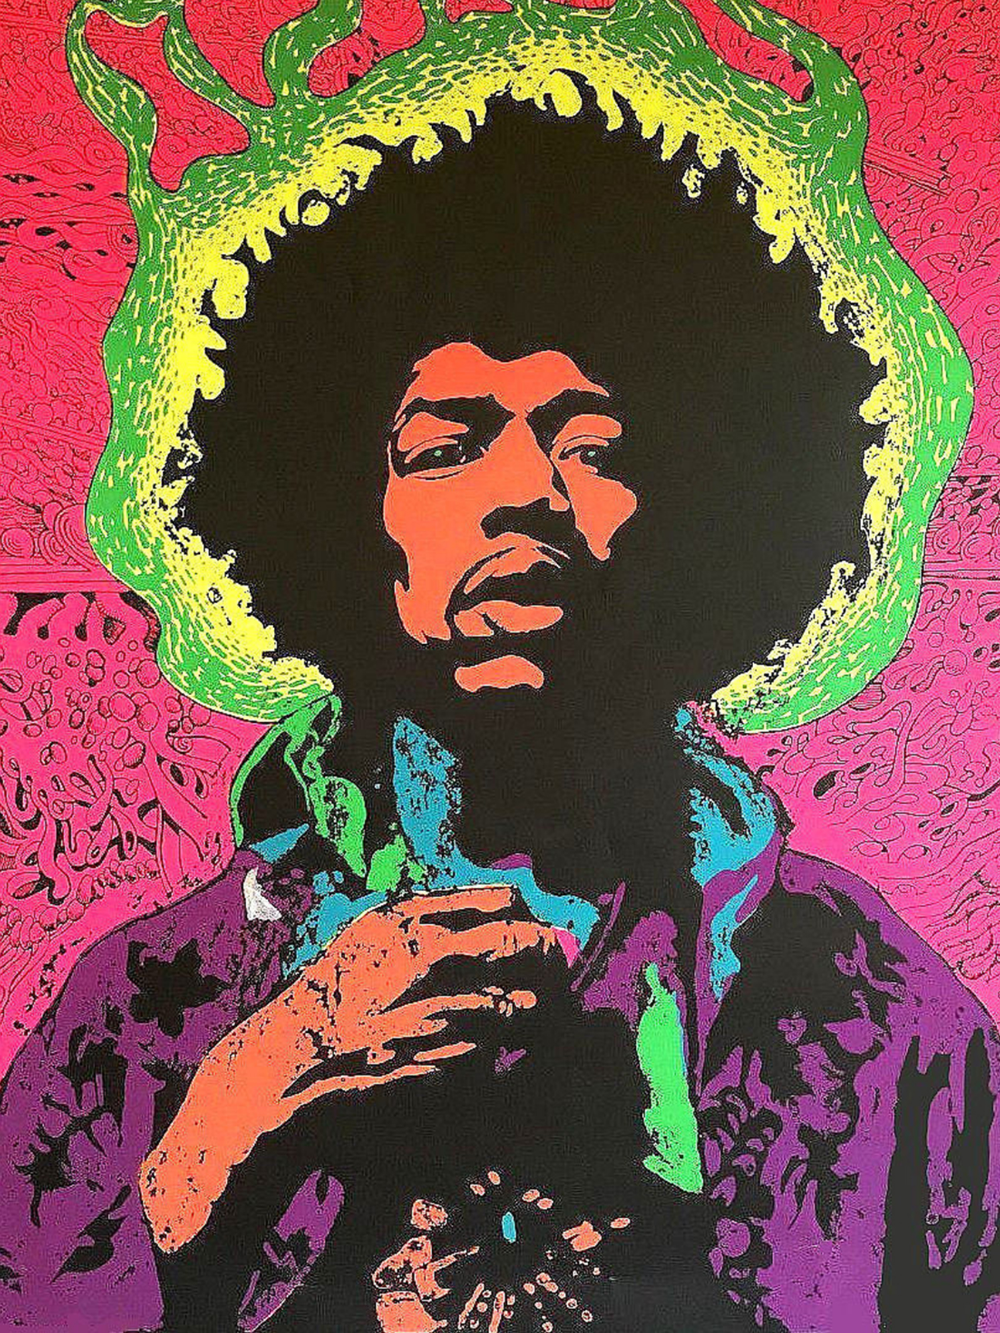 Jimi Hendrix Poster Rock Band Posters 20 Off Psychedelic Poster Rock Band Posters Jimi Hendrix Poster